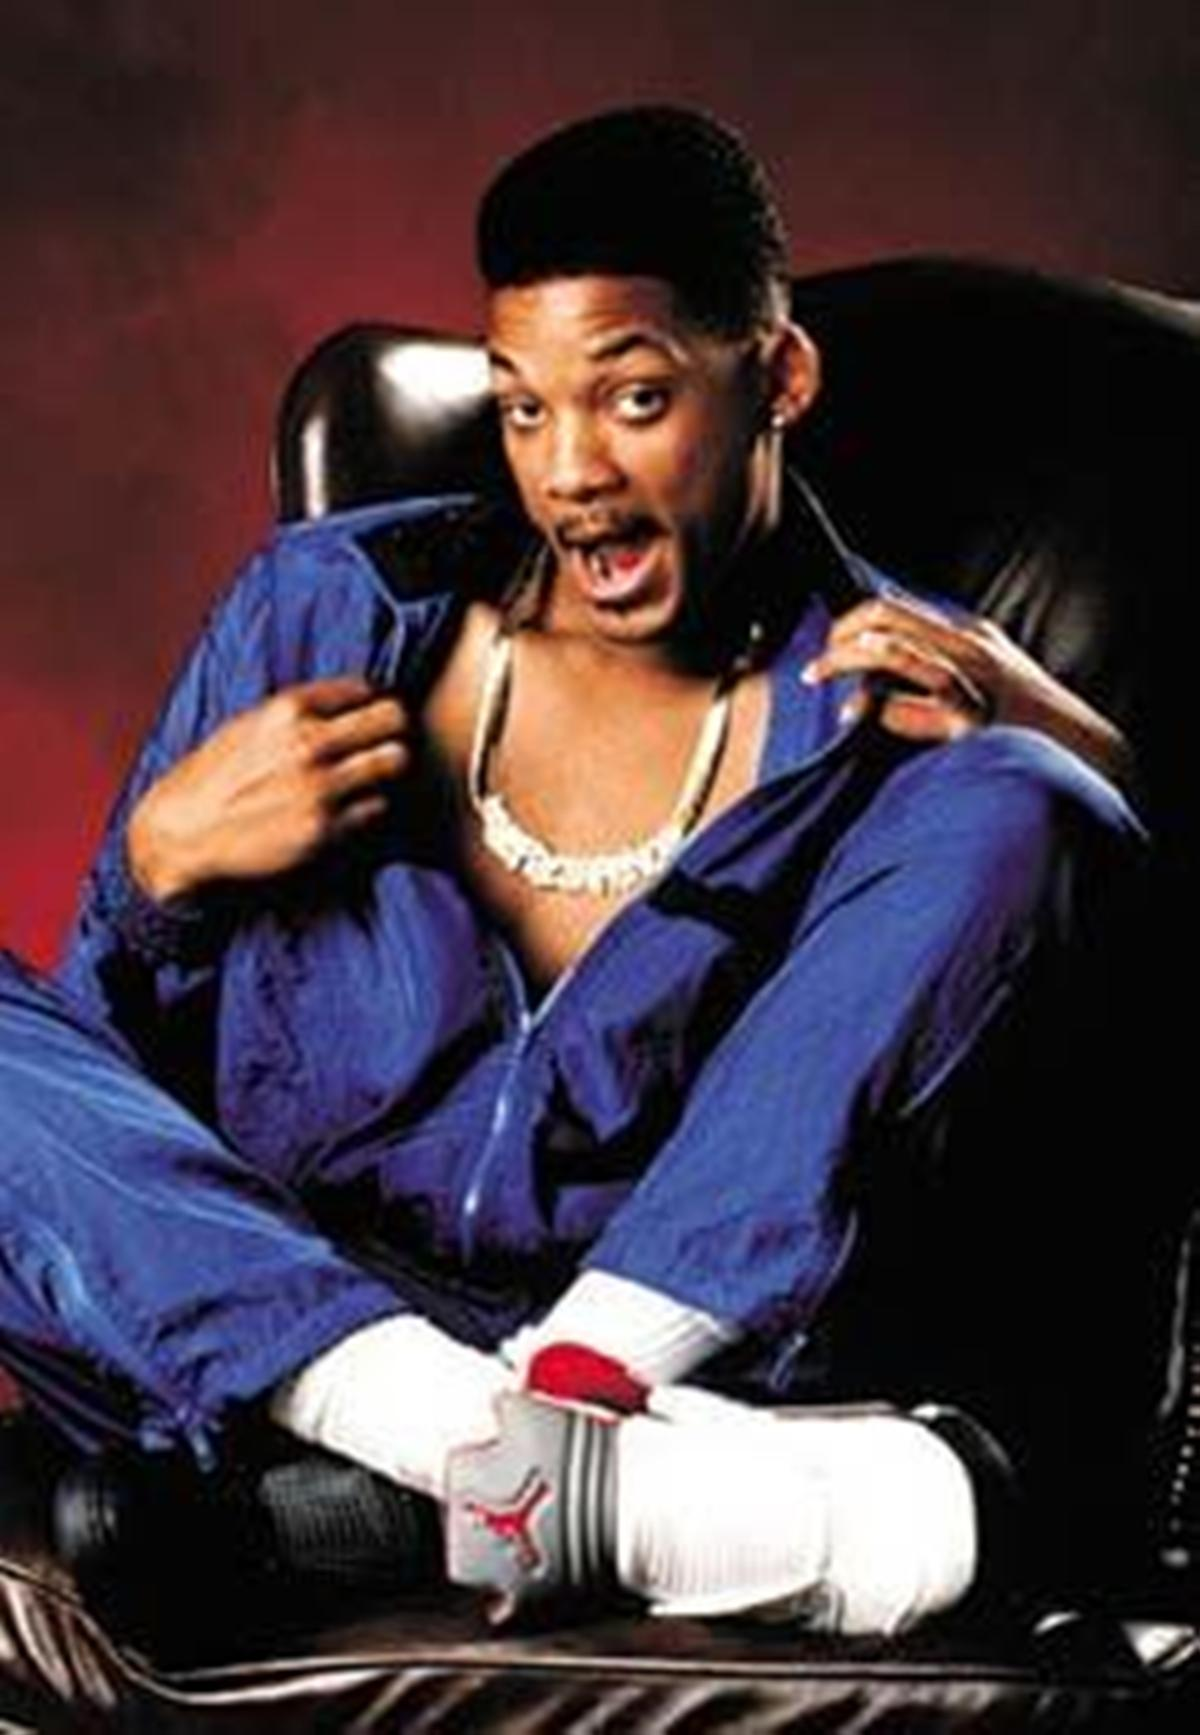 Fresh Prince Of Bel Air Wallpapers Top Free Fresh Prince Of Bel